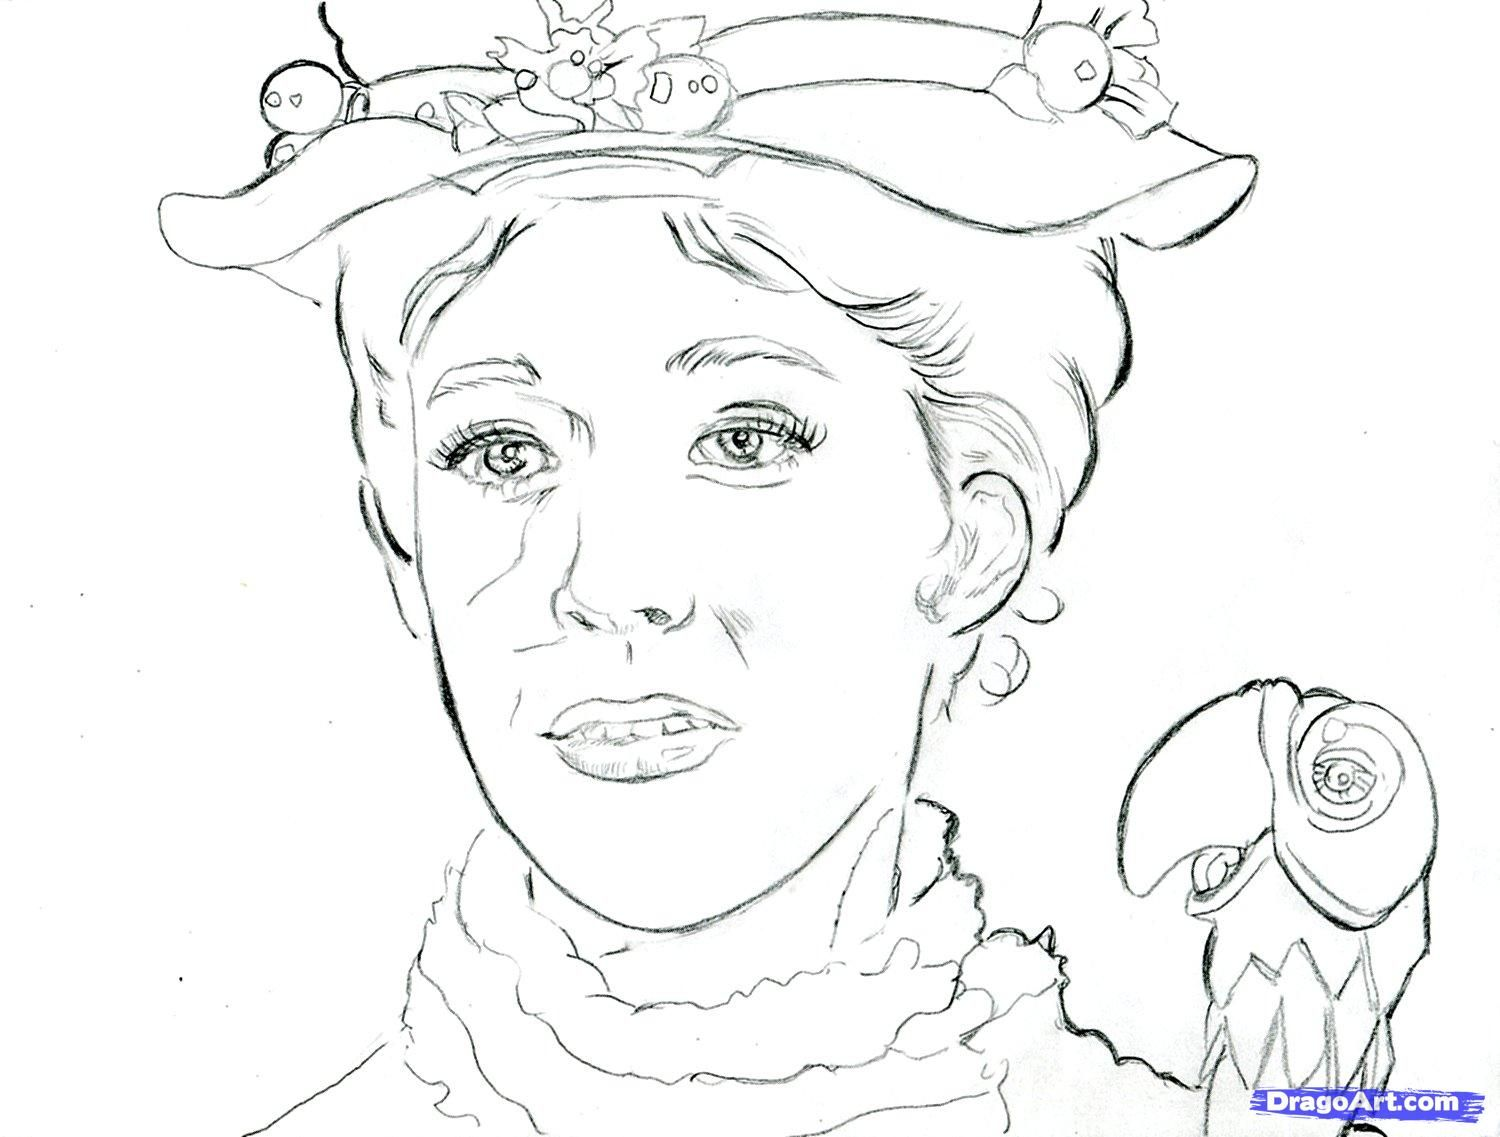 how-to-draw-mary-poppins-julie-andrews-step-10_1_000000094811_5.jpg ...